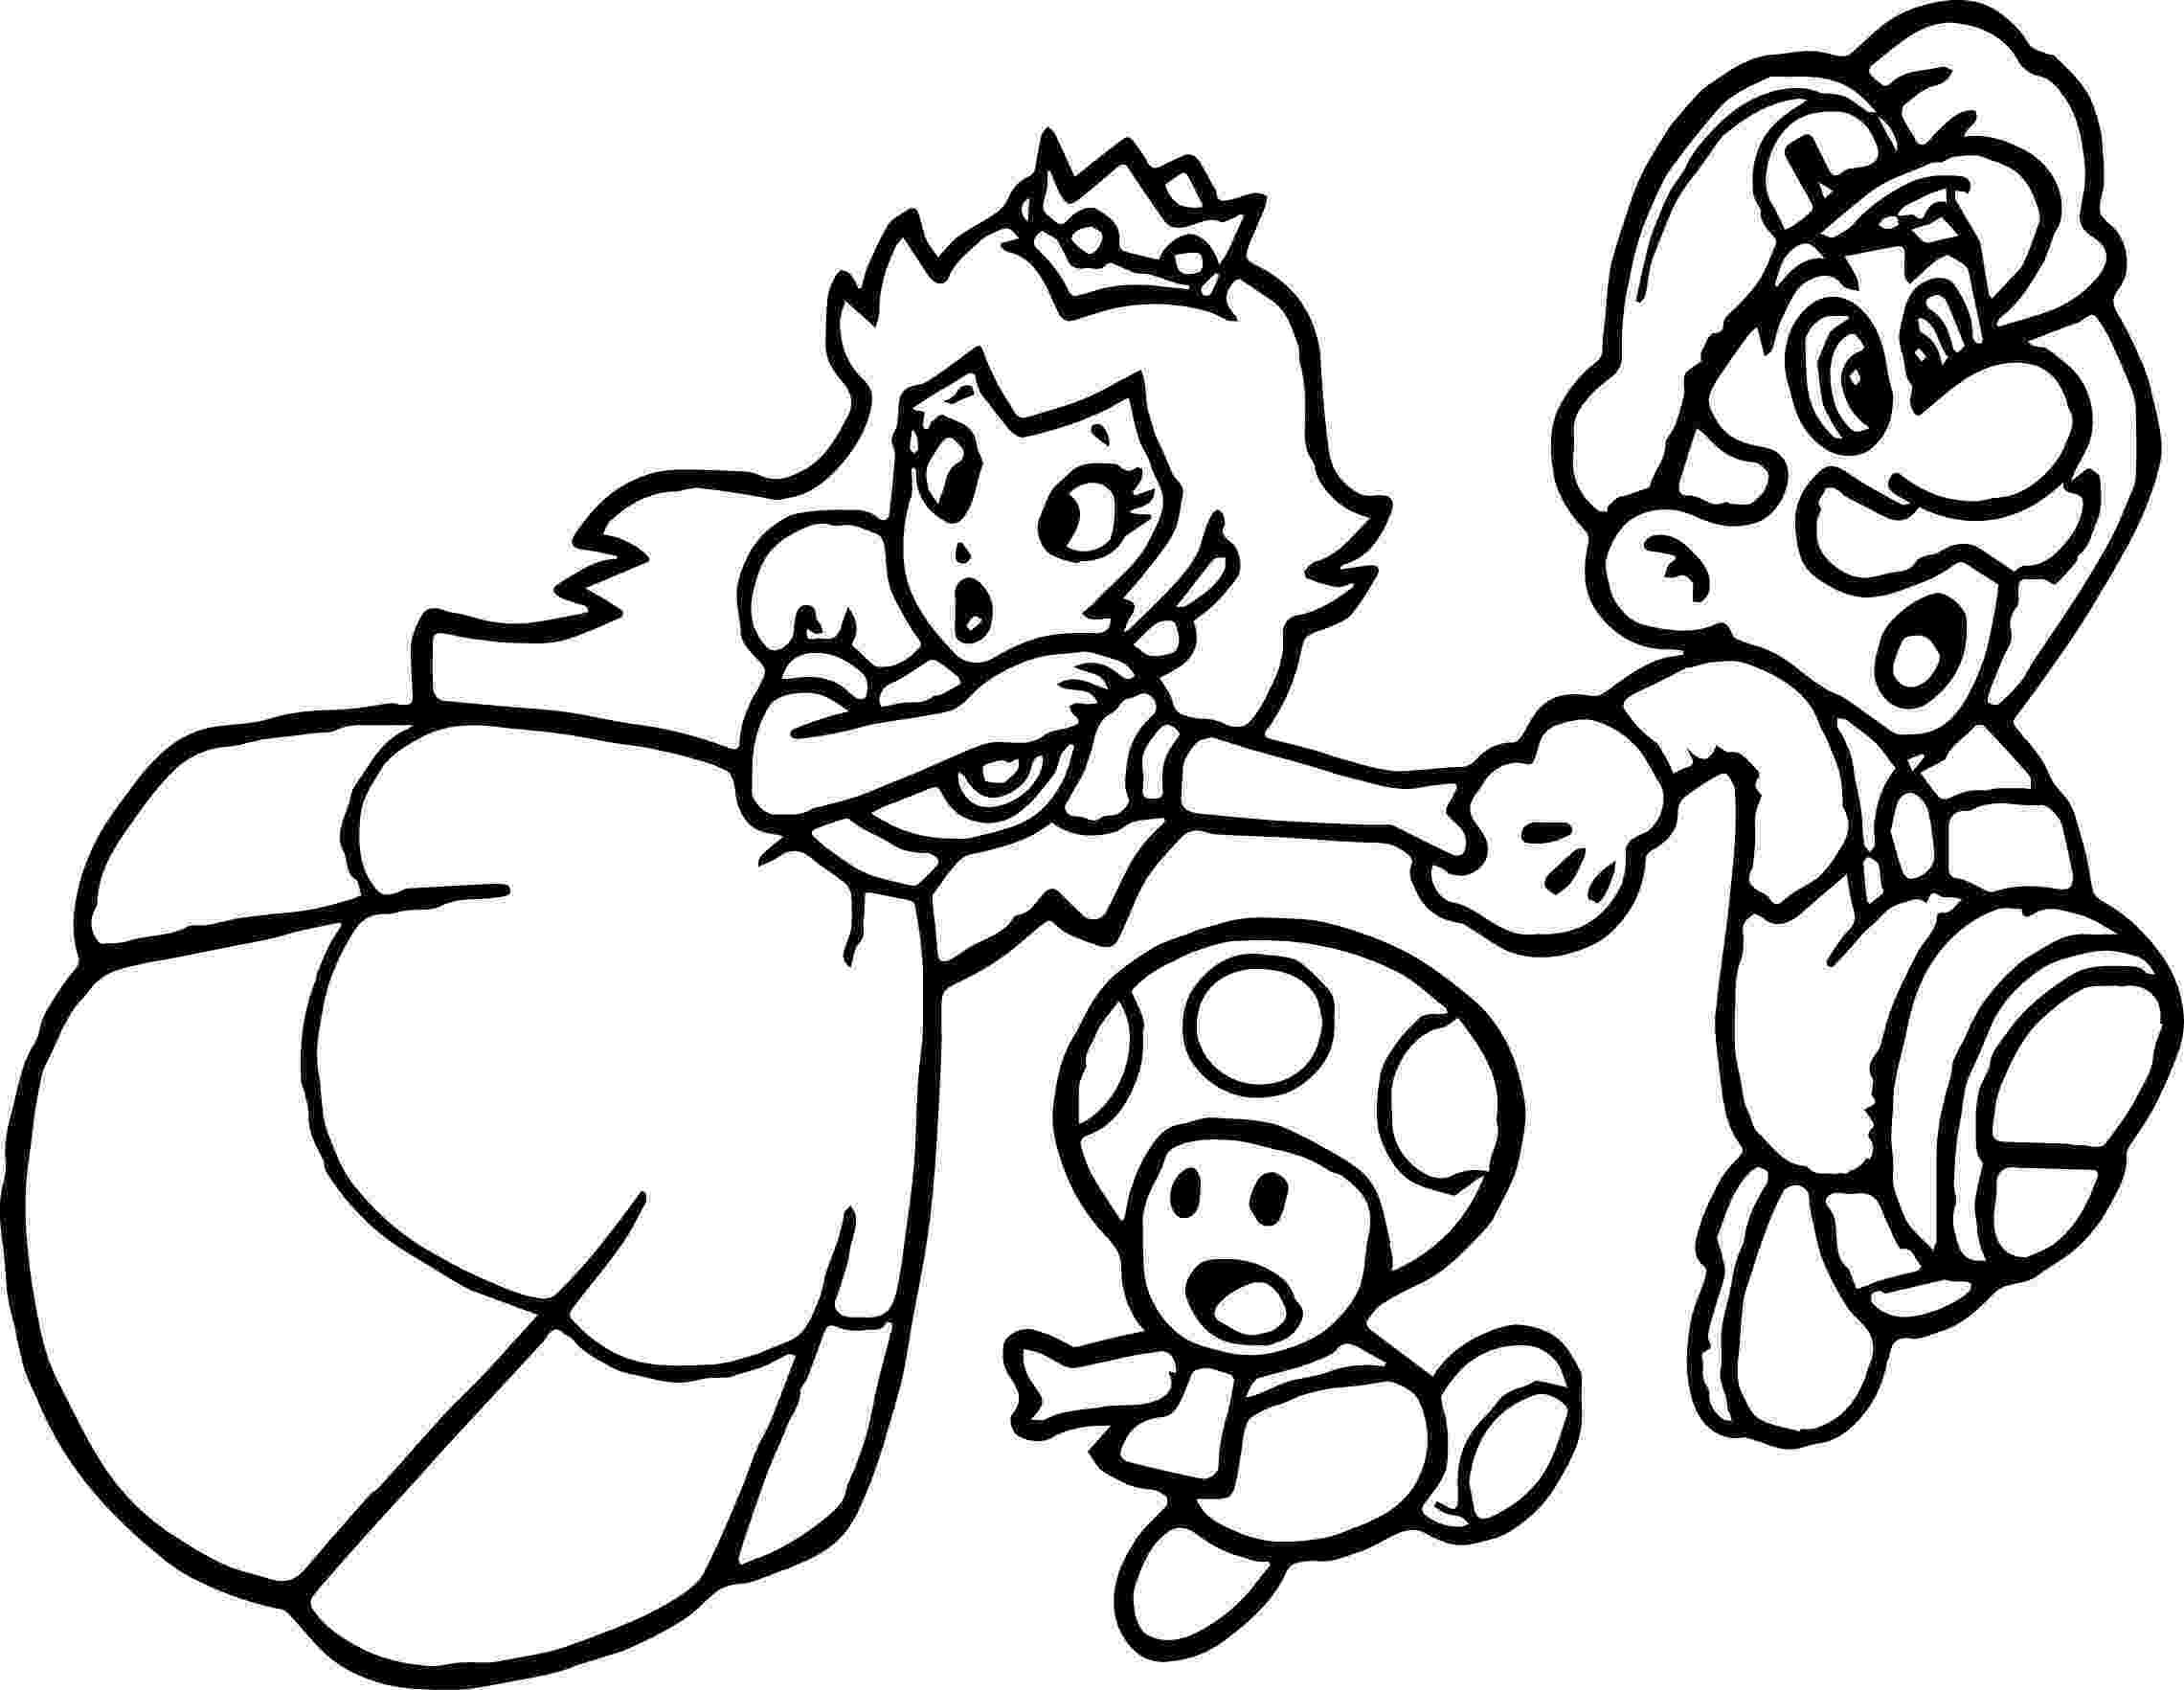 super mario bros pictures to print and colour new super mario bros kids coloring pages free colouring super bros colour to mario pictures and print